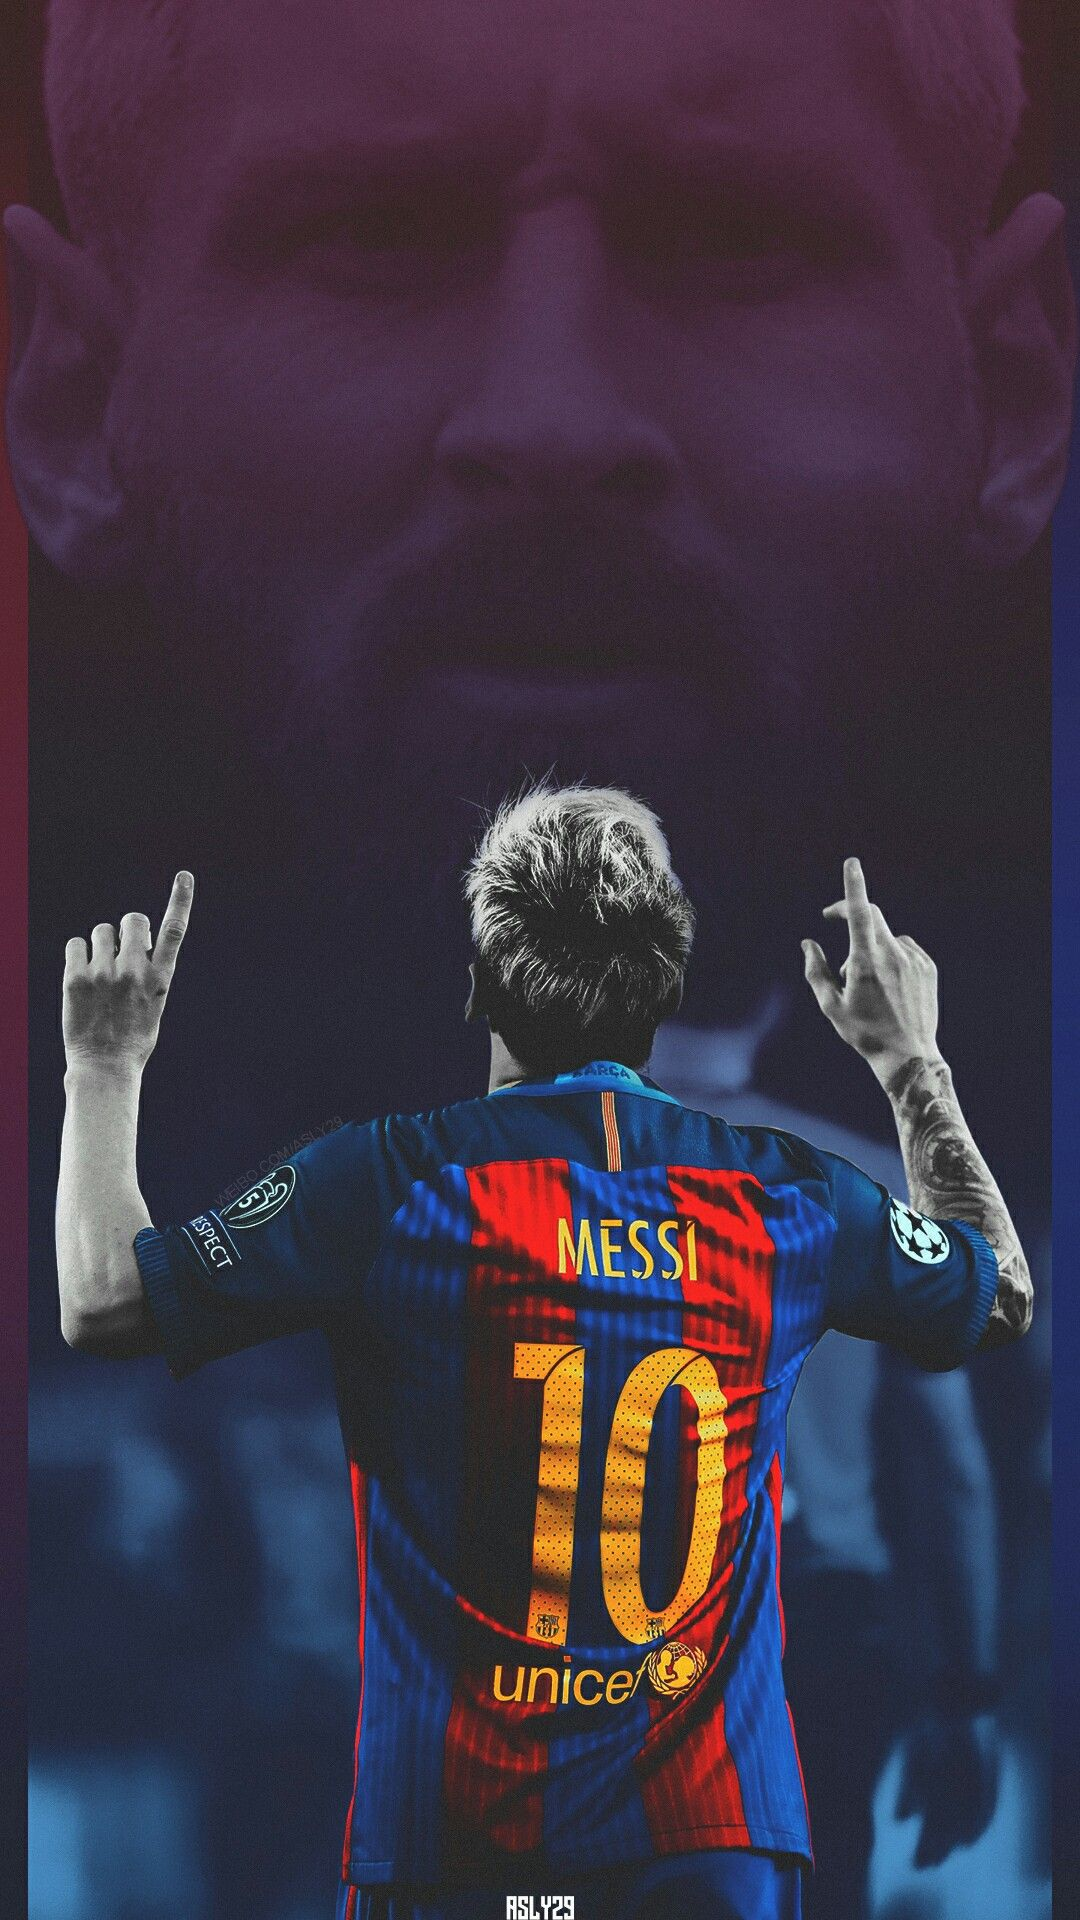 the king Barcelona wallpaper Pinterest Messi, Lionel